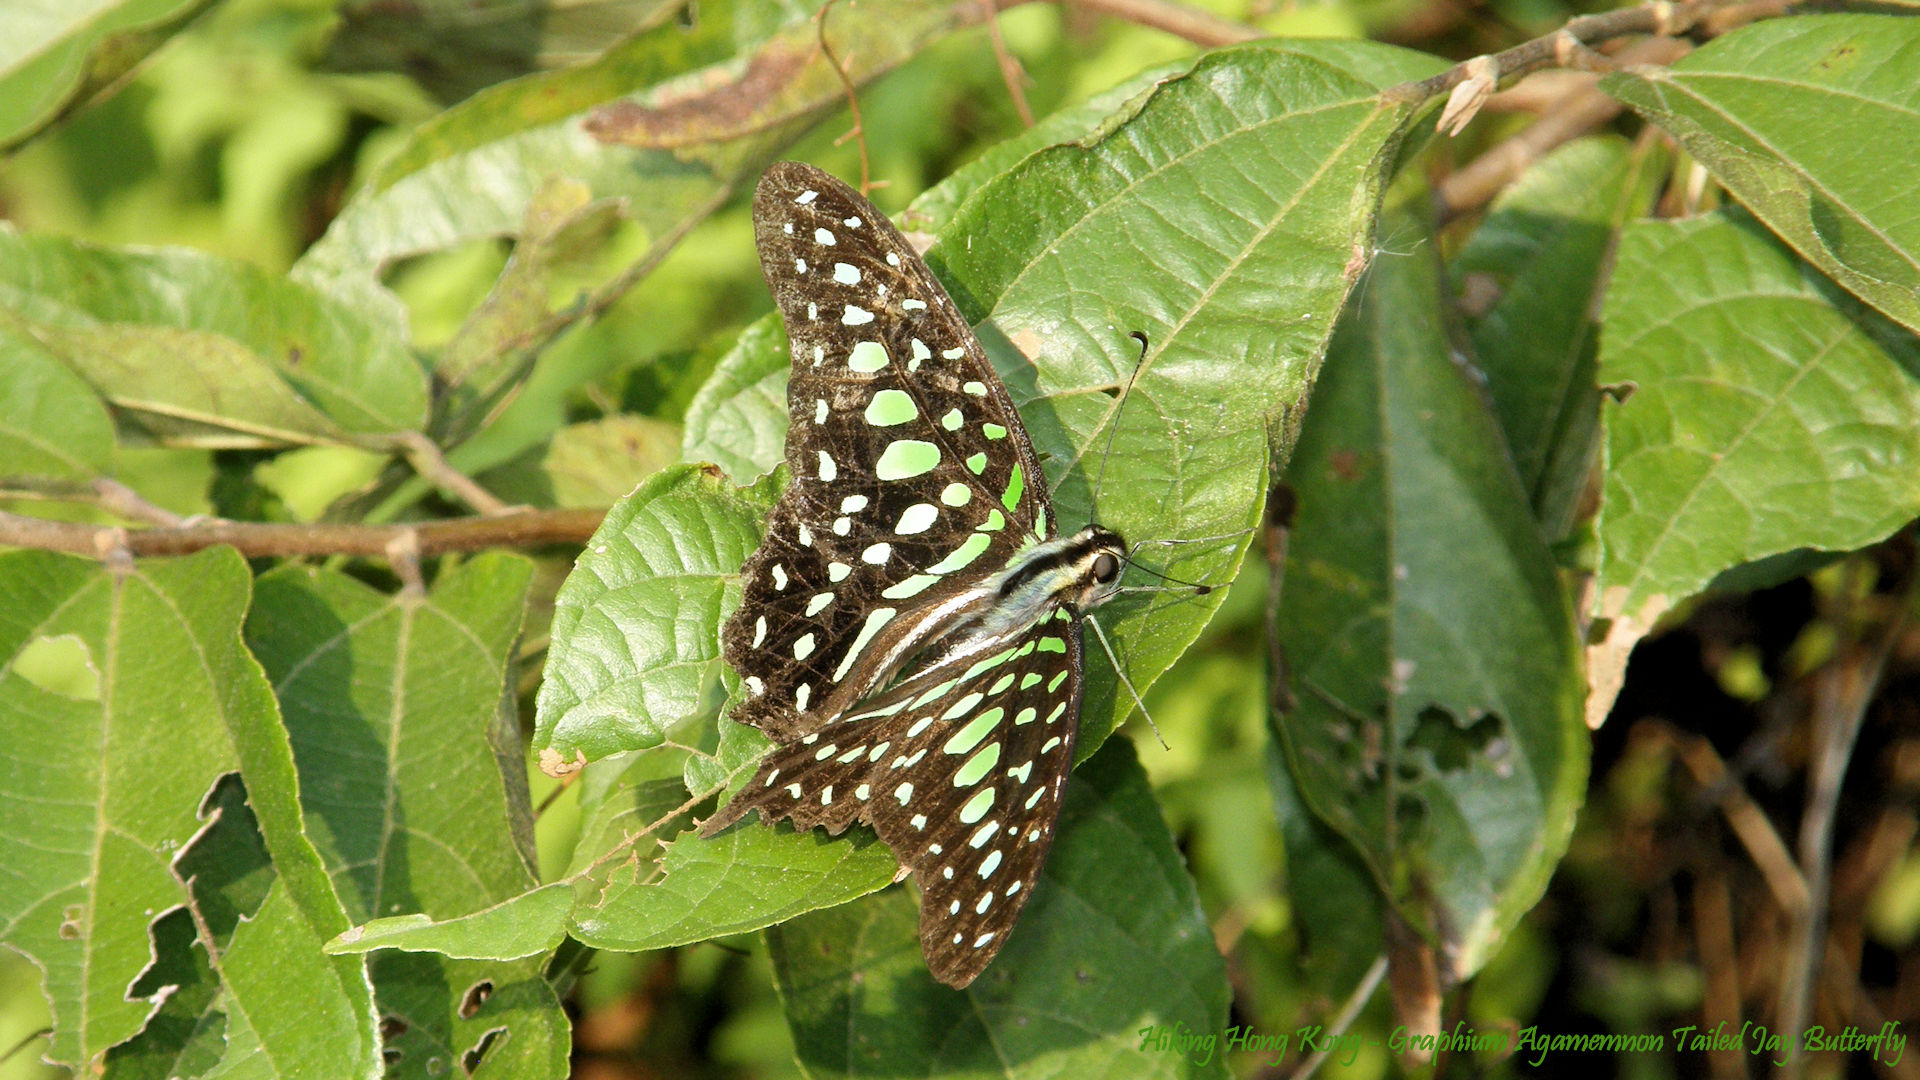 Hong-Kong-Butterfly-Graphium-Agamemnon-Tailed-Jay-Butterfly-Hiking-Hong-Kong-wallpaper-wpc5805977